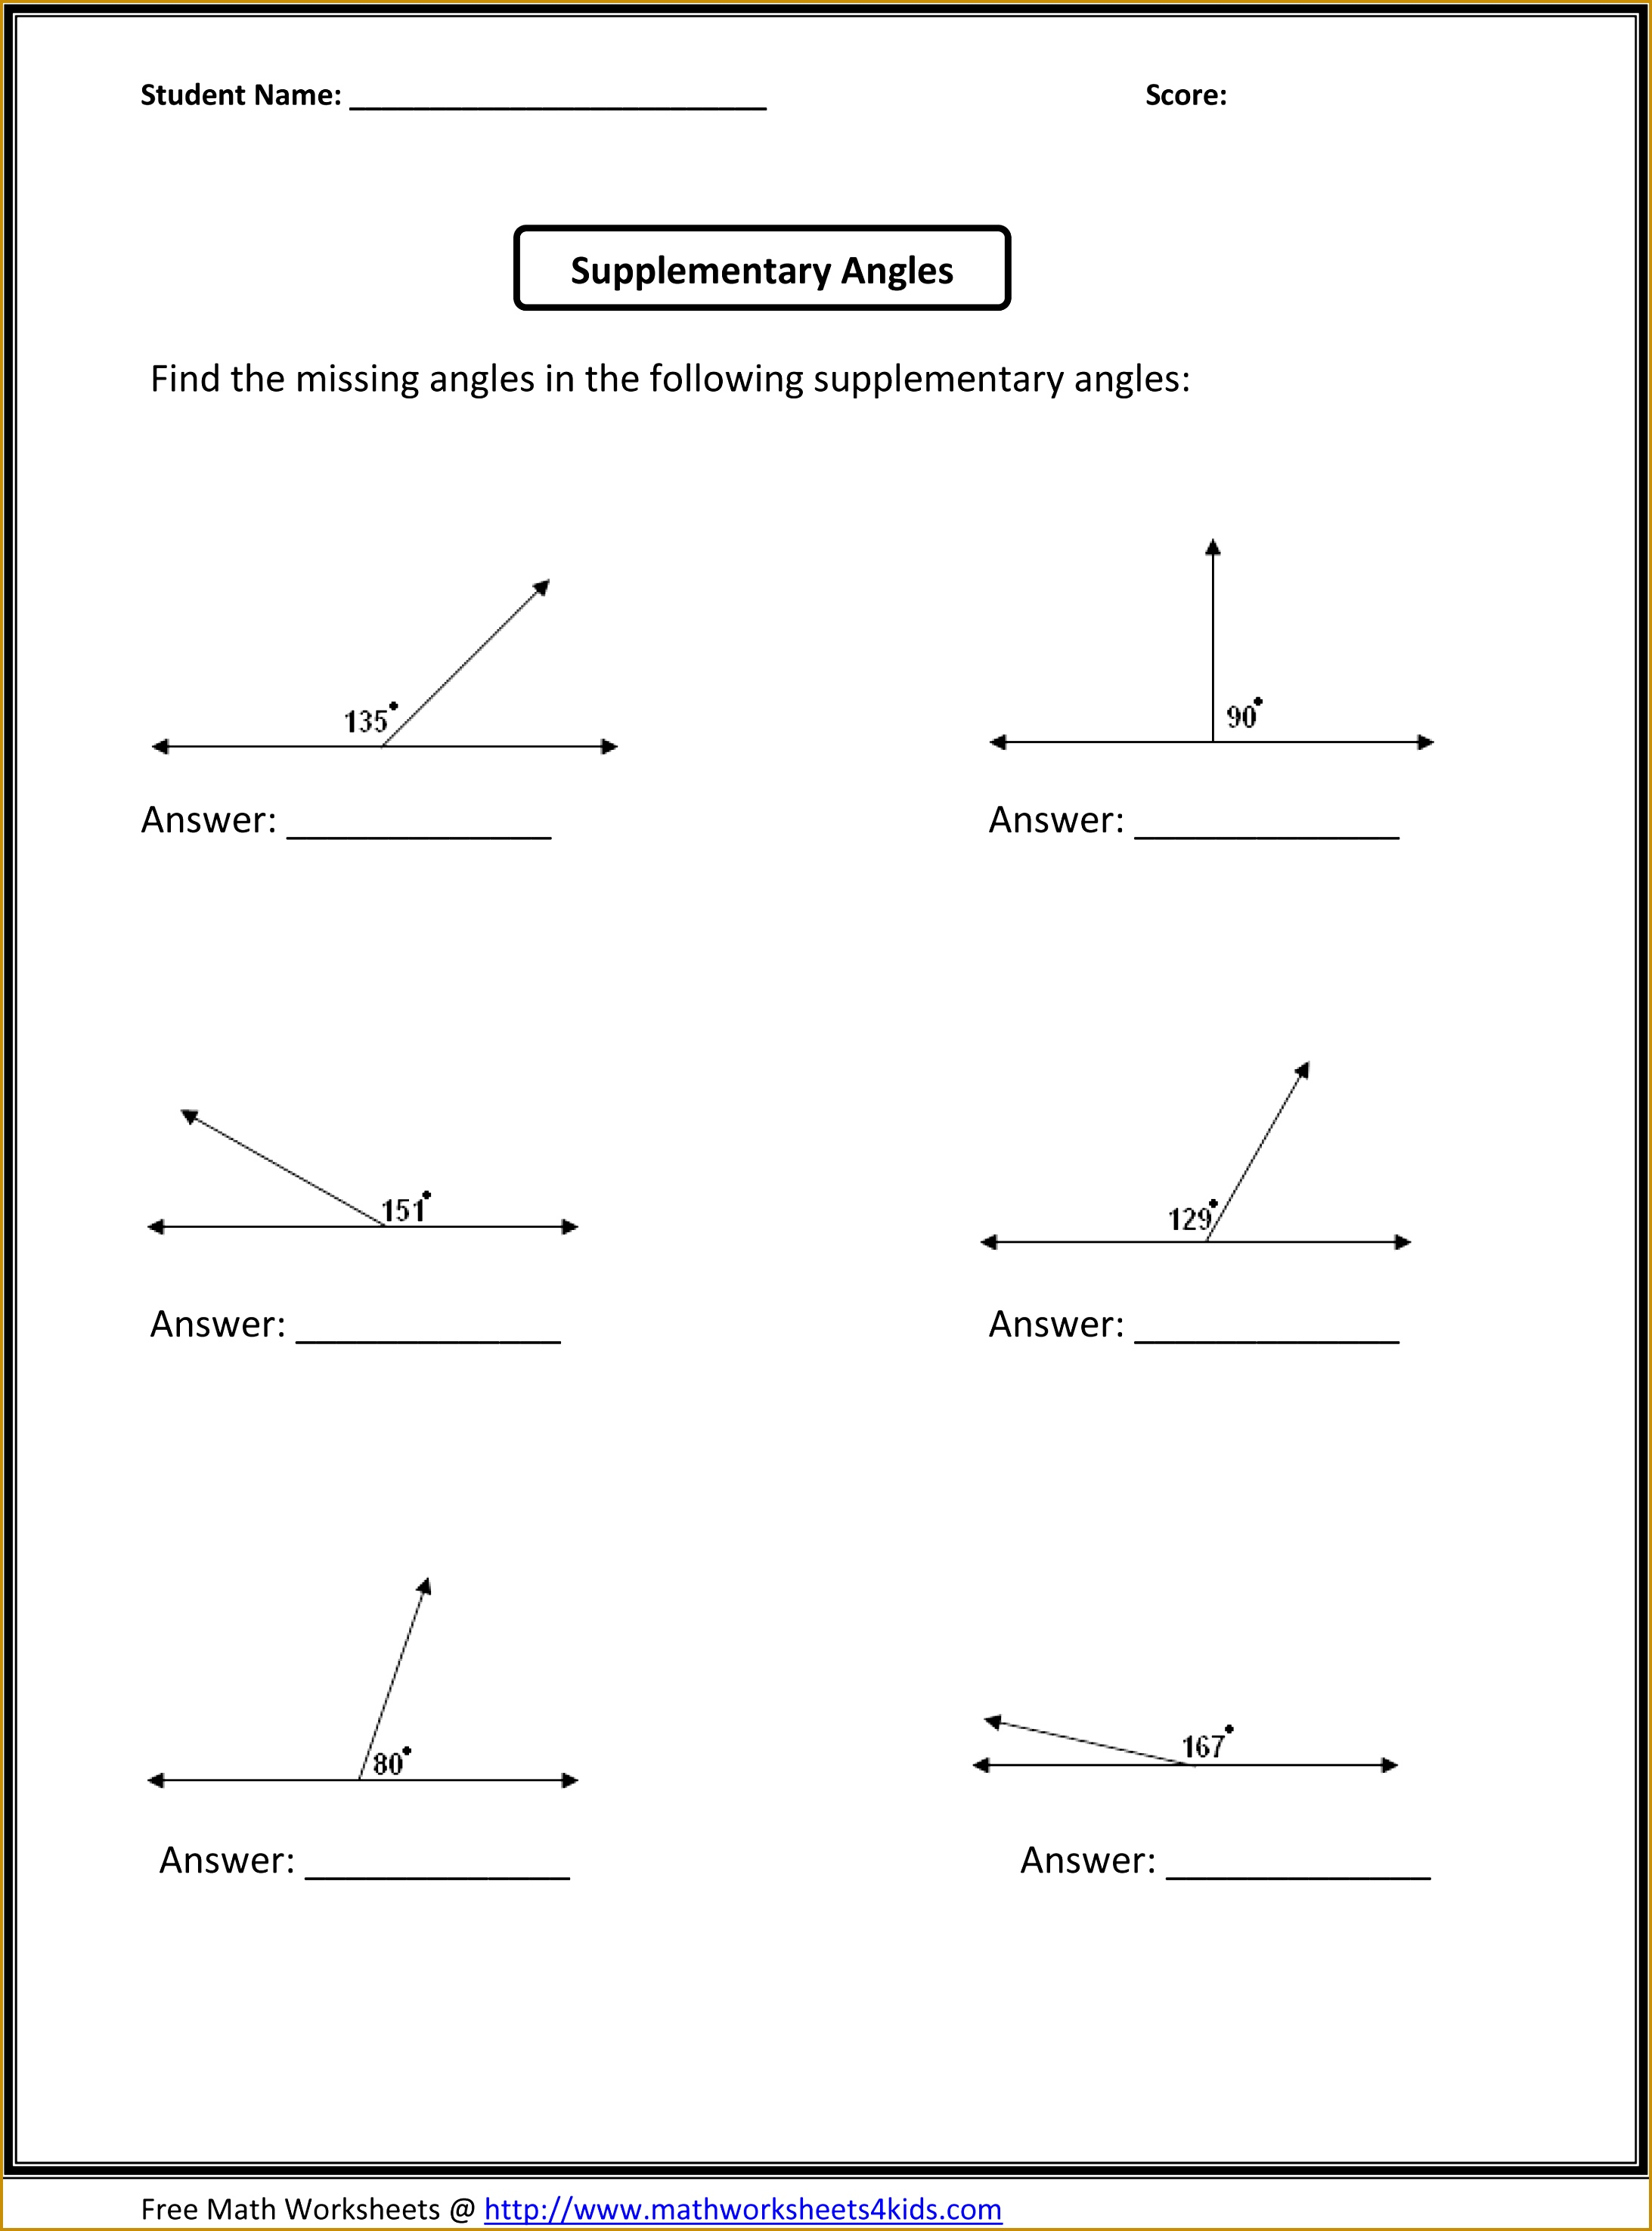 7 Math Worksheets Grade 5